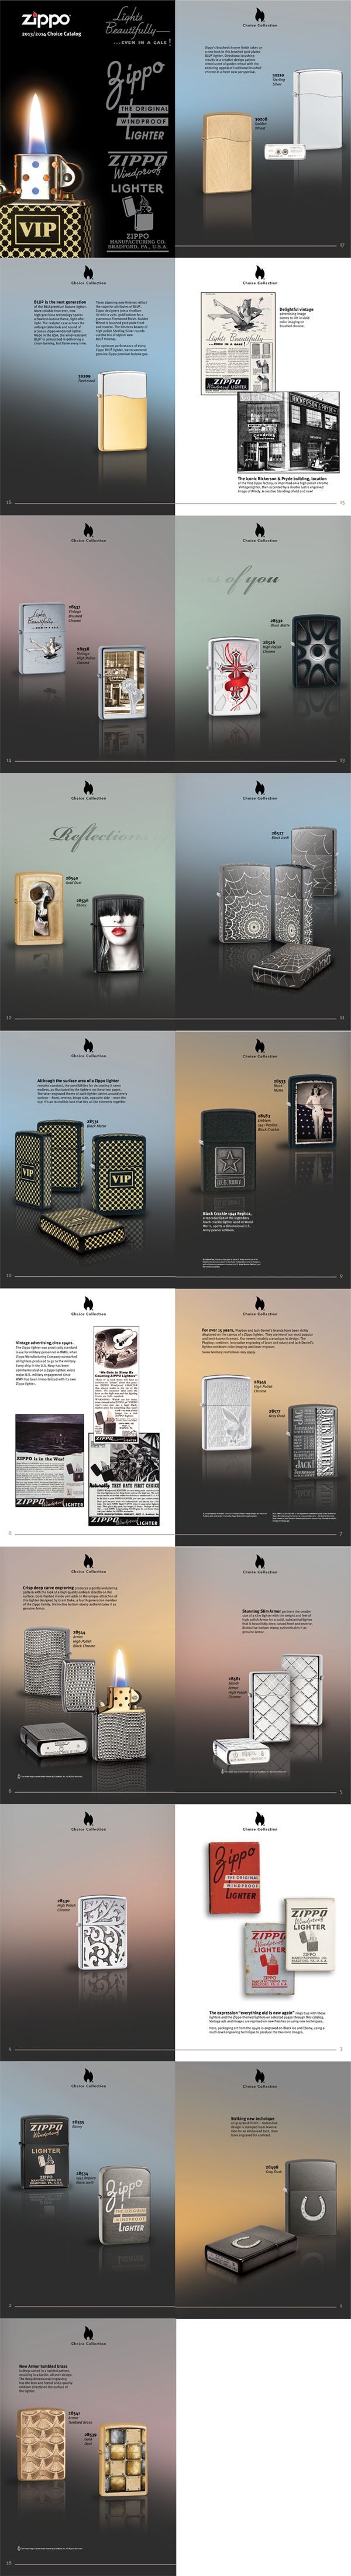 Introducing the 2013/2014 Zippo Choice Catalog! Choice is a handpicked collection of Zippo lighters, selected from hundreds of concepts submitted by our best designers, guaranteed to appeal to even the most refined tastes. Click here to see our entire new collection of Zippo Windproof and Blu Butane lighters!